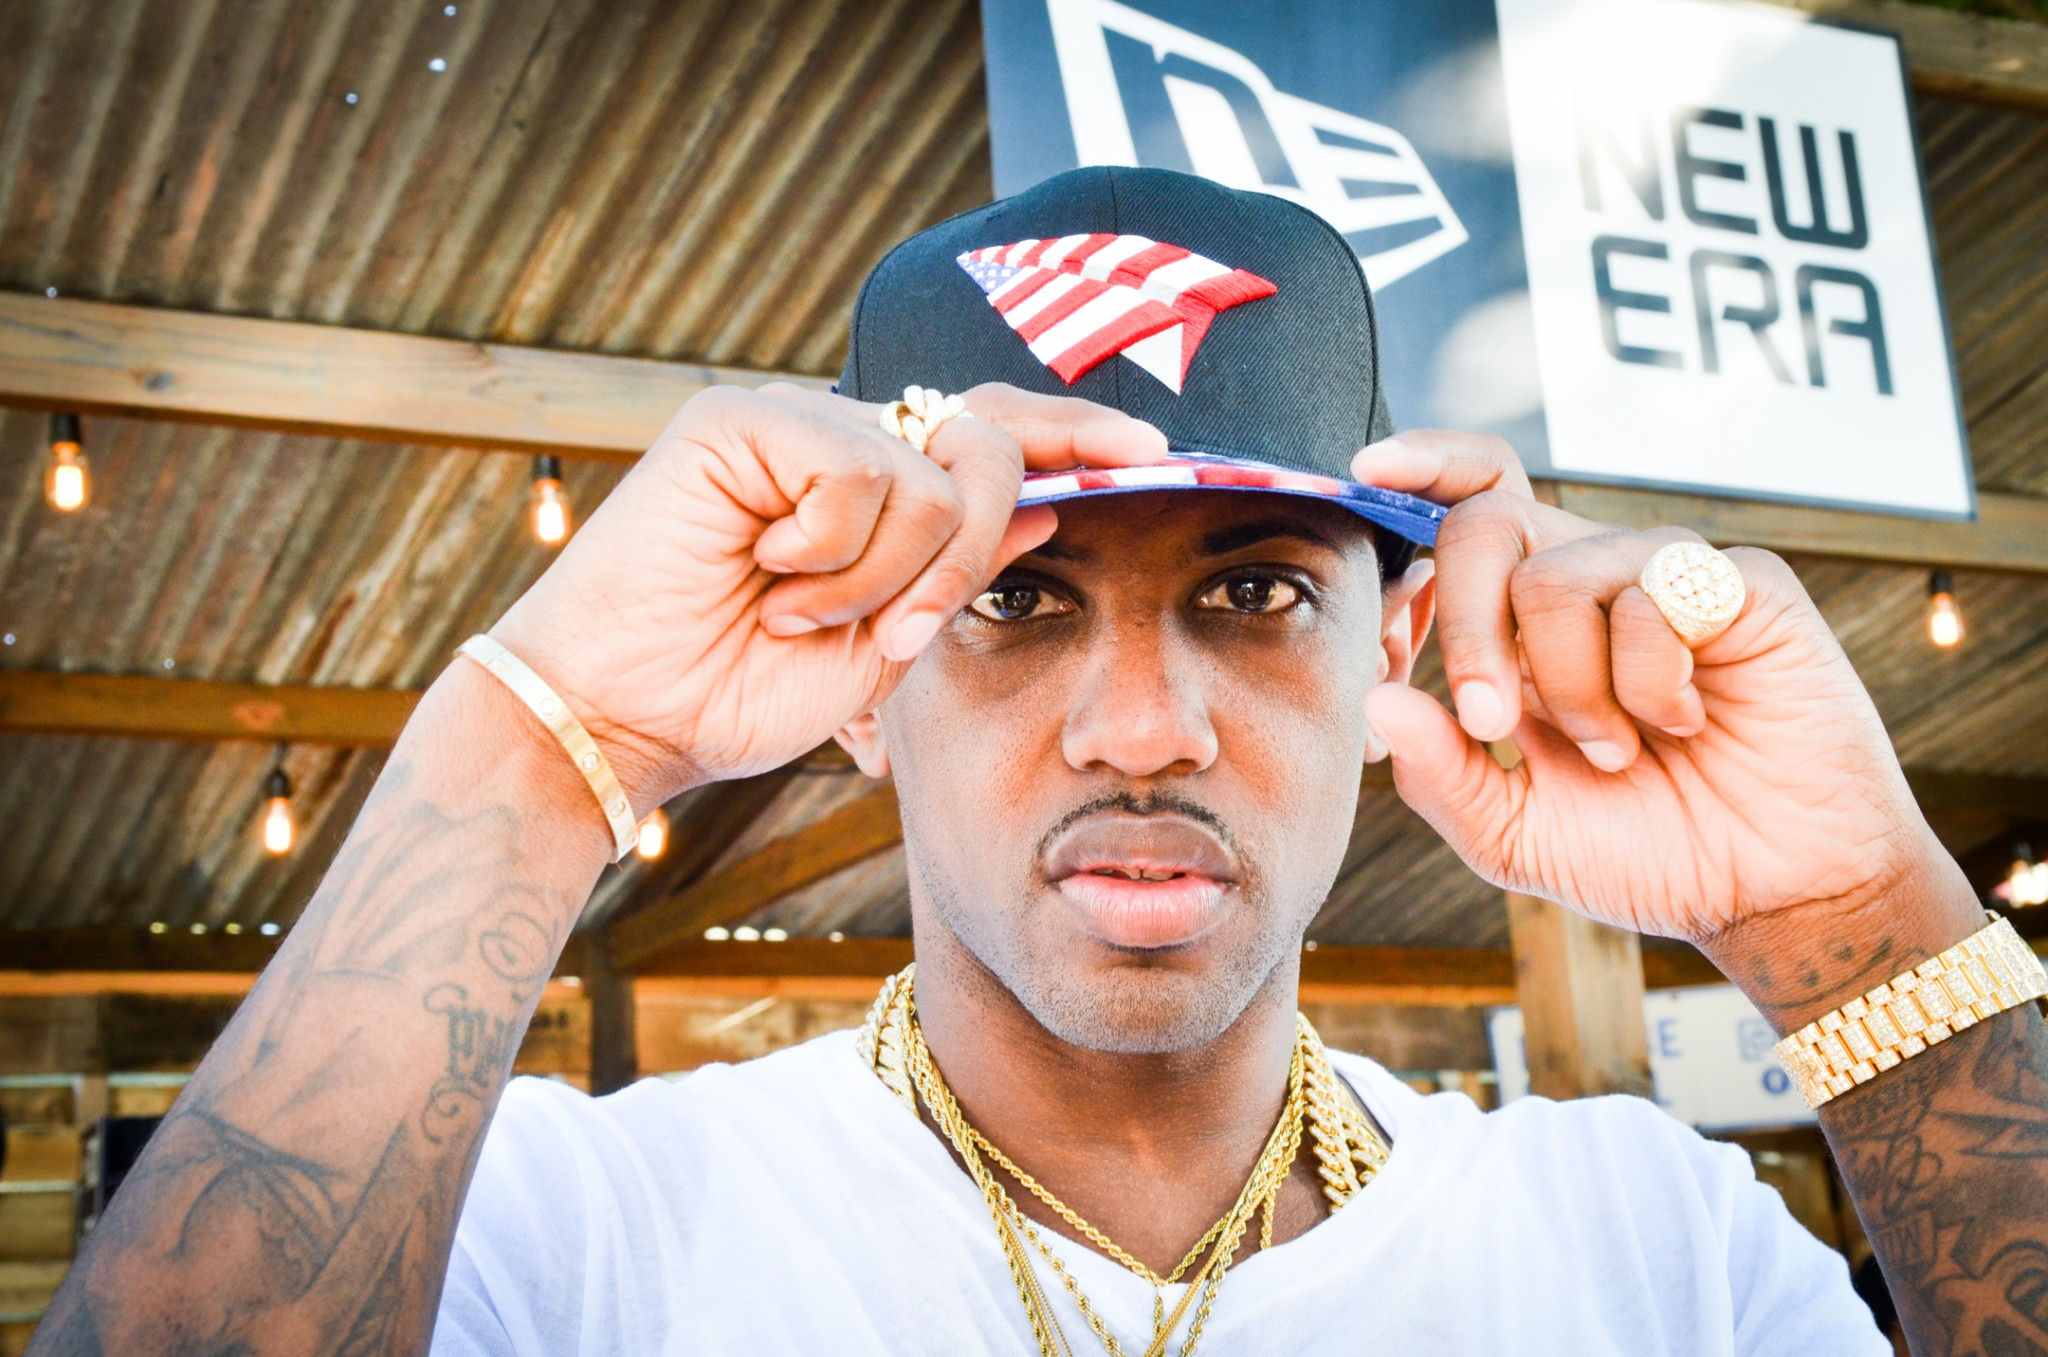 979b95300c7f Hip hop artist Fabolous picks out a hat New Era booth on the second day of